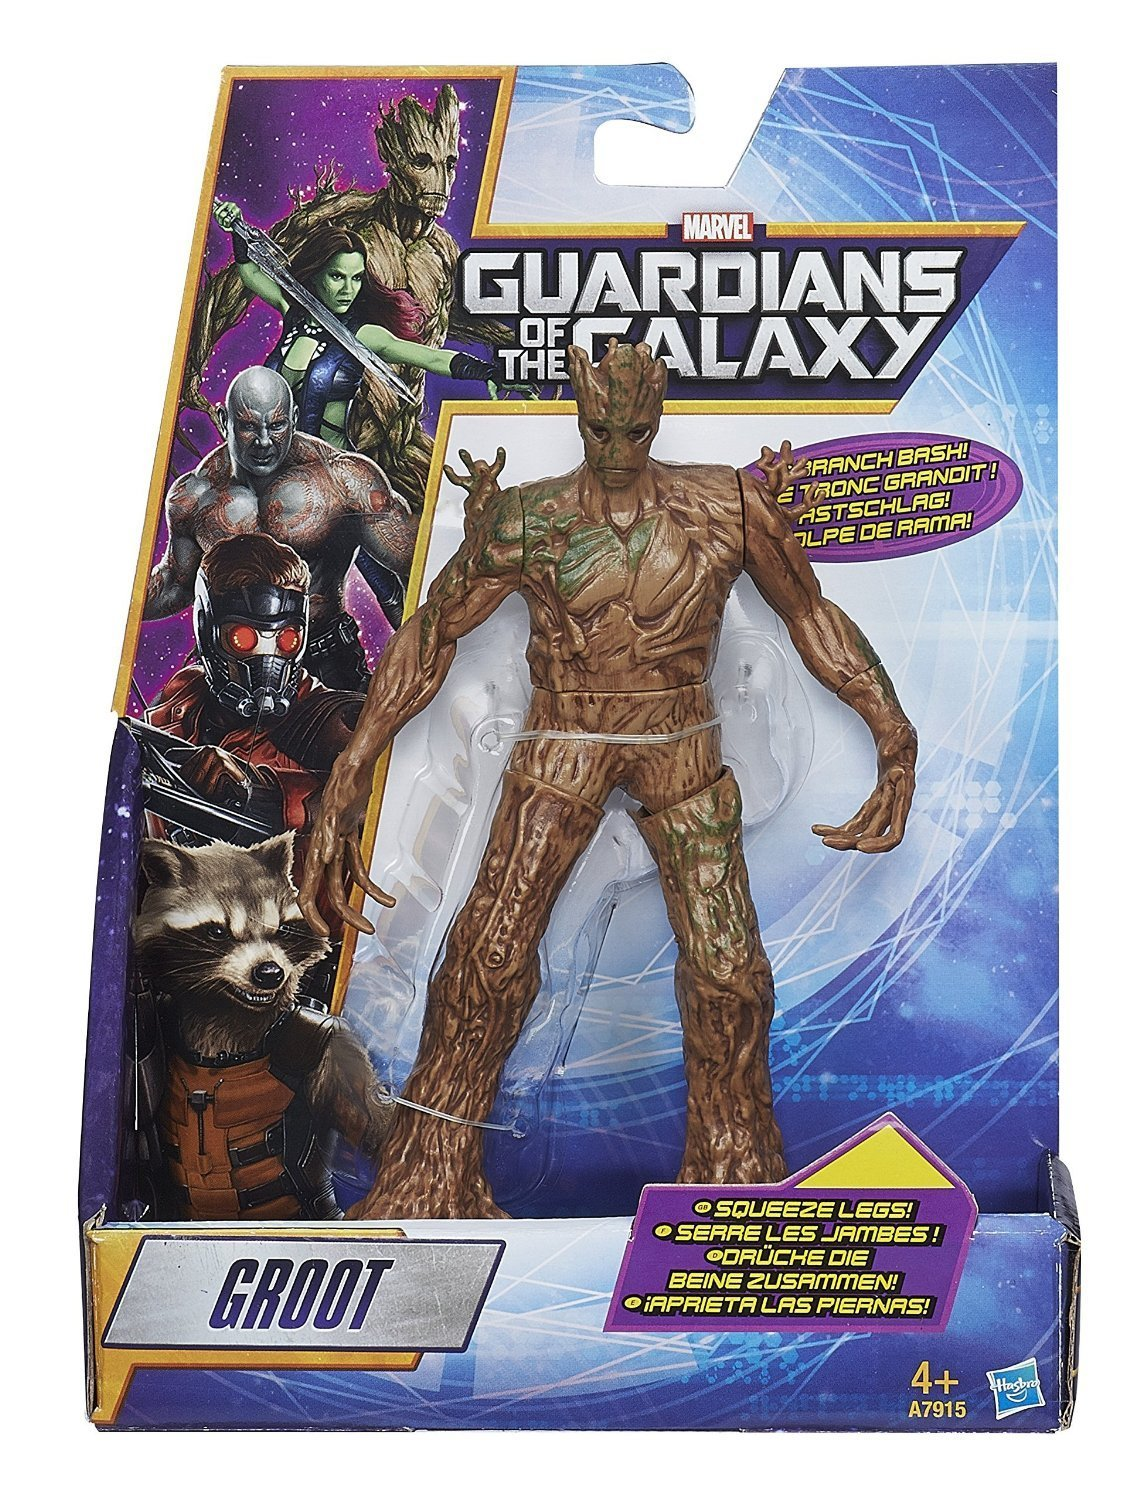 Guardians of the Galaxy Rapid Revealers Figure Assortment